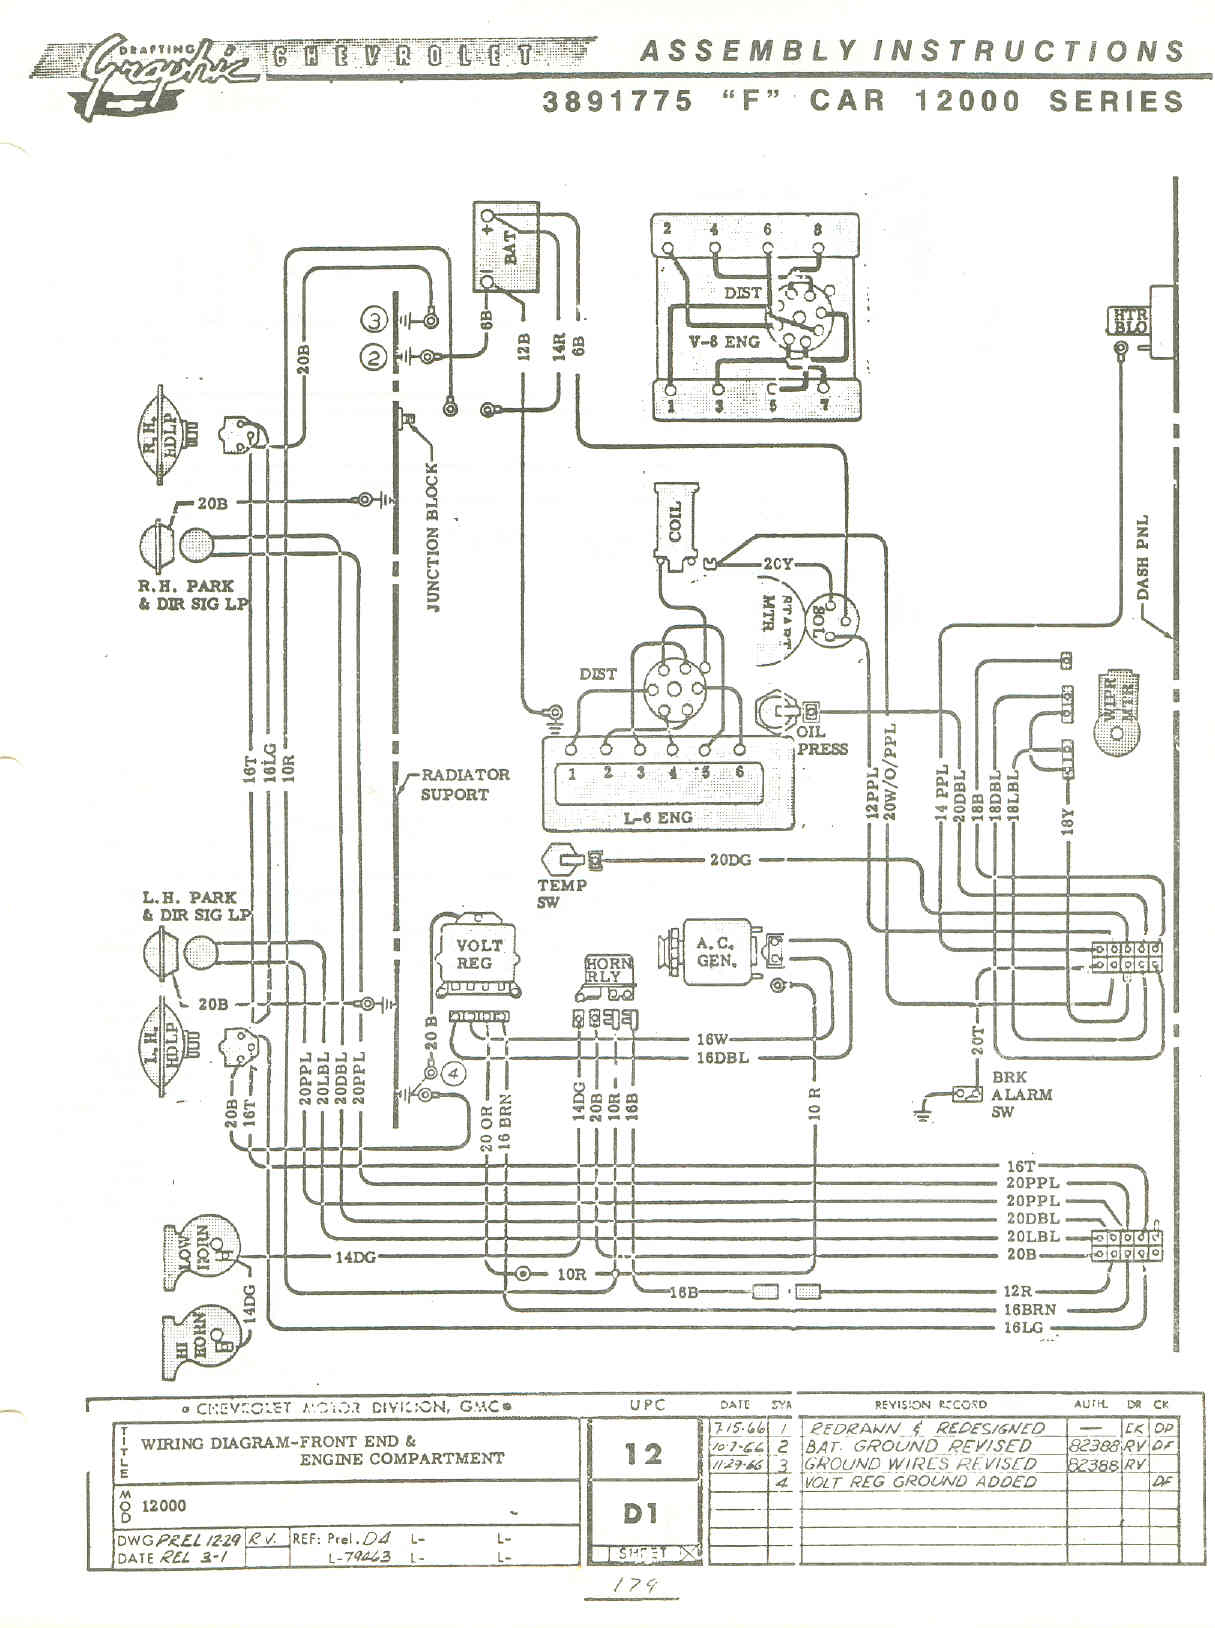 1978 corvette wiring diagram pdf 1978 image wiring 1980 corvette wiring diagram pdf 1980 image wiring on 1978 corvette wiring diagram pdf